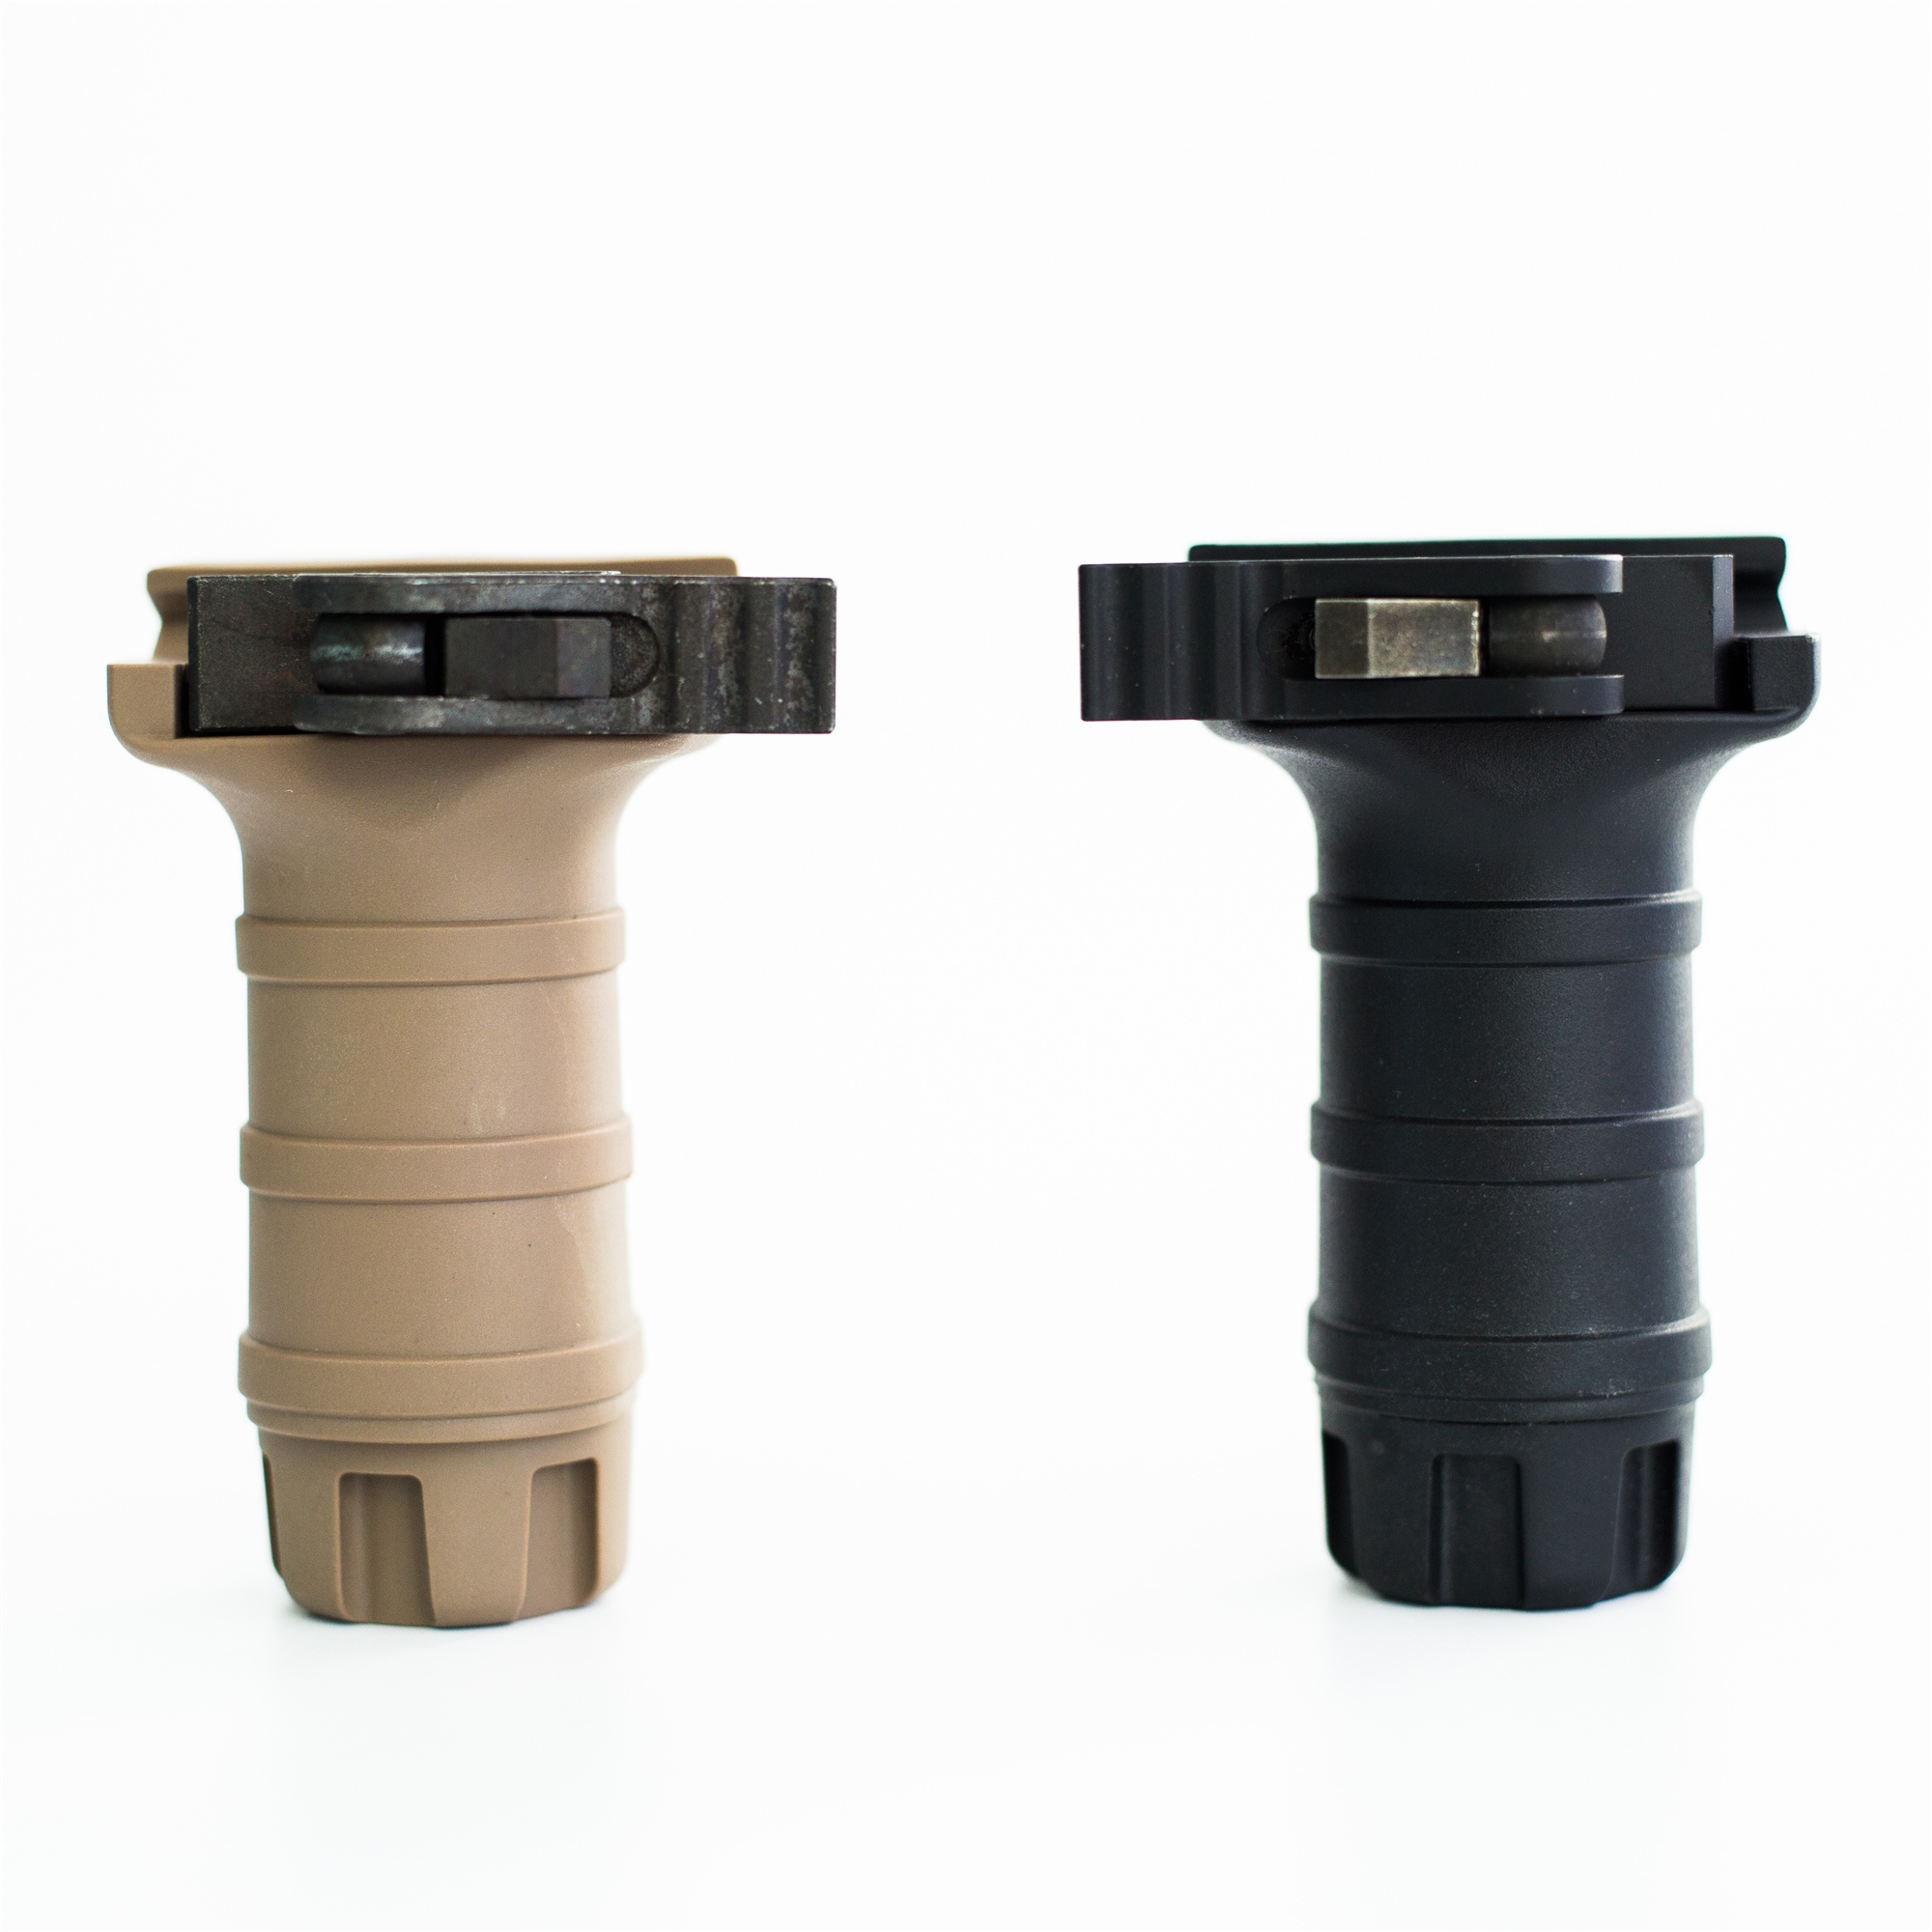 AEG Airsoft Tactical Handle Grip For JinMing 8th M4A1 Gel Ball Game Nylon Foregrip For Toy Gun Replacement Accessories